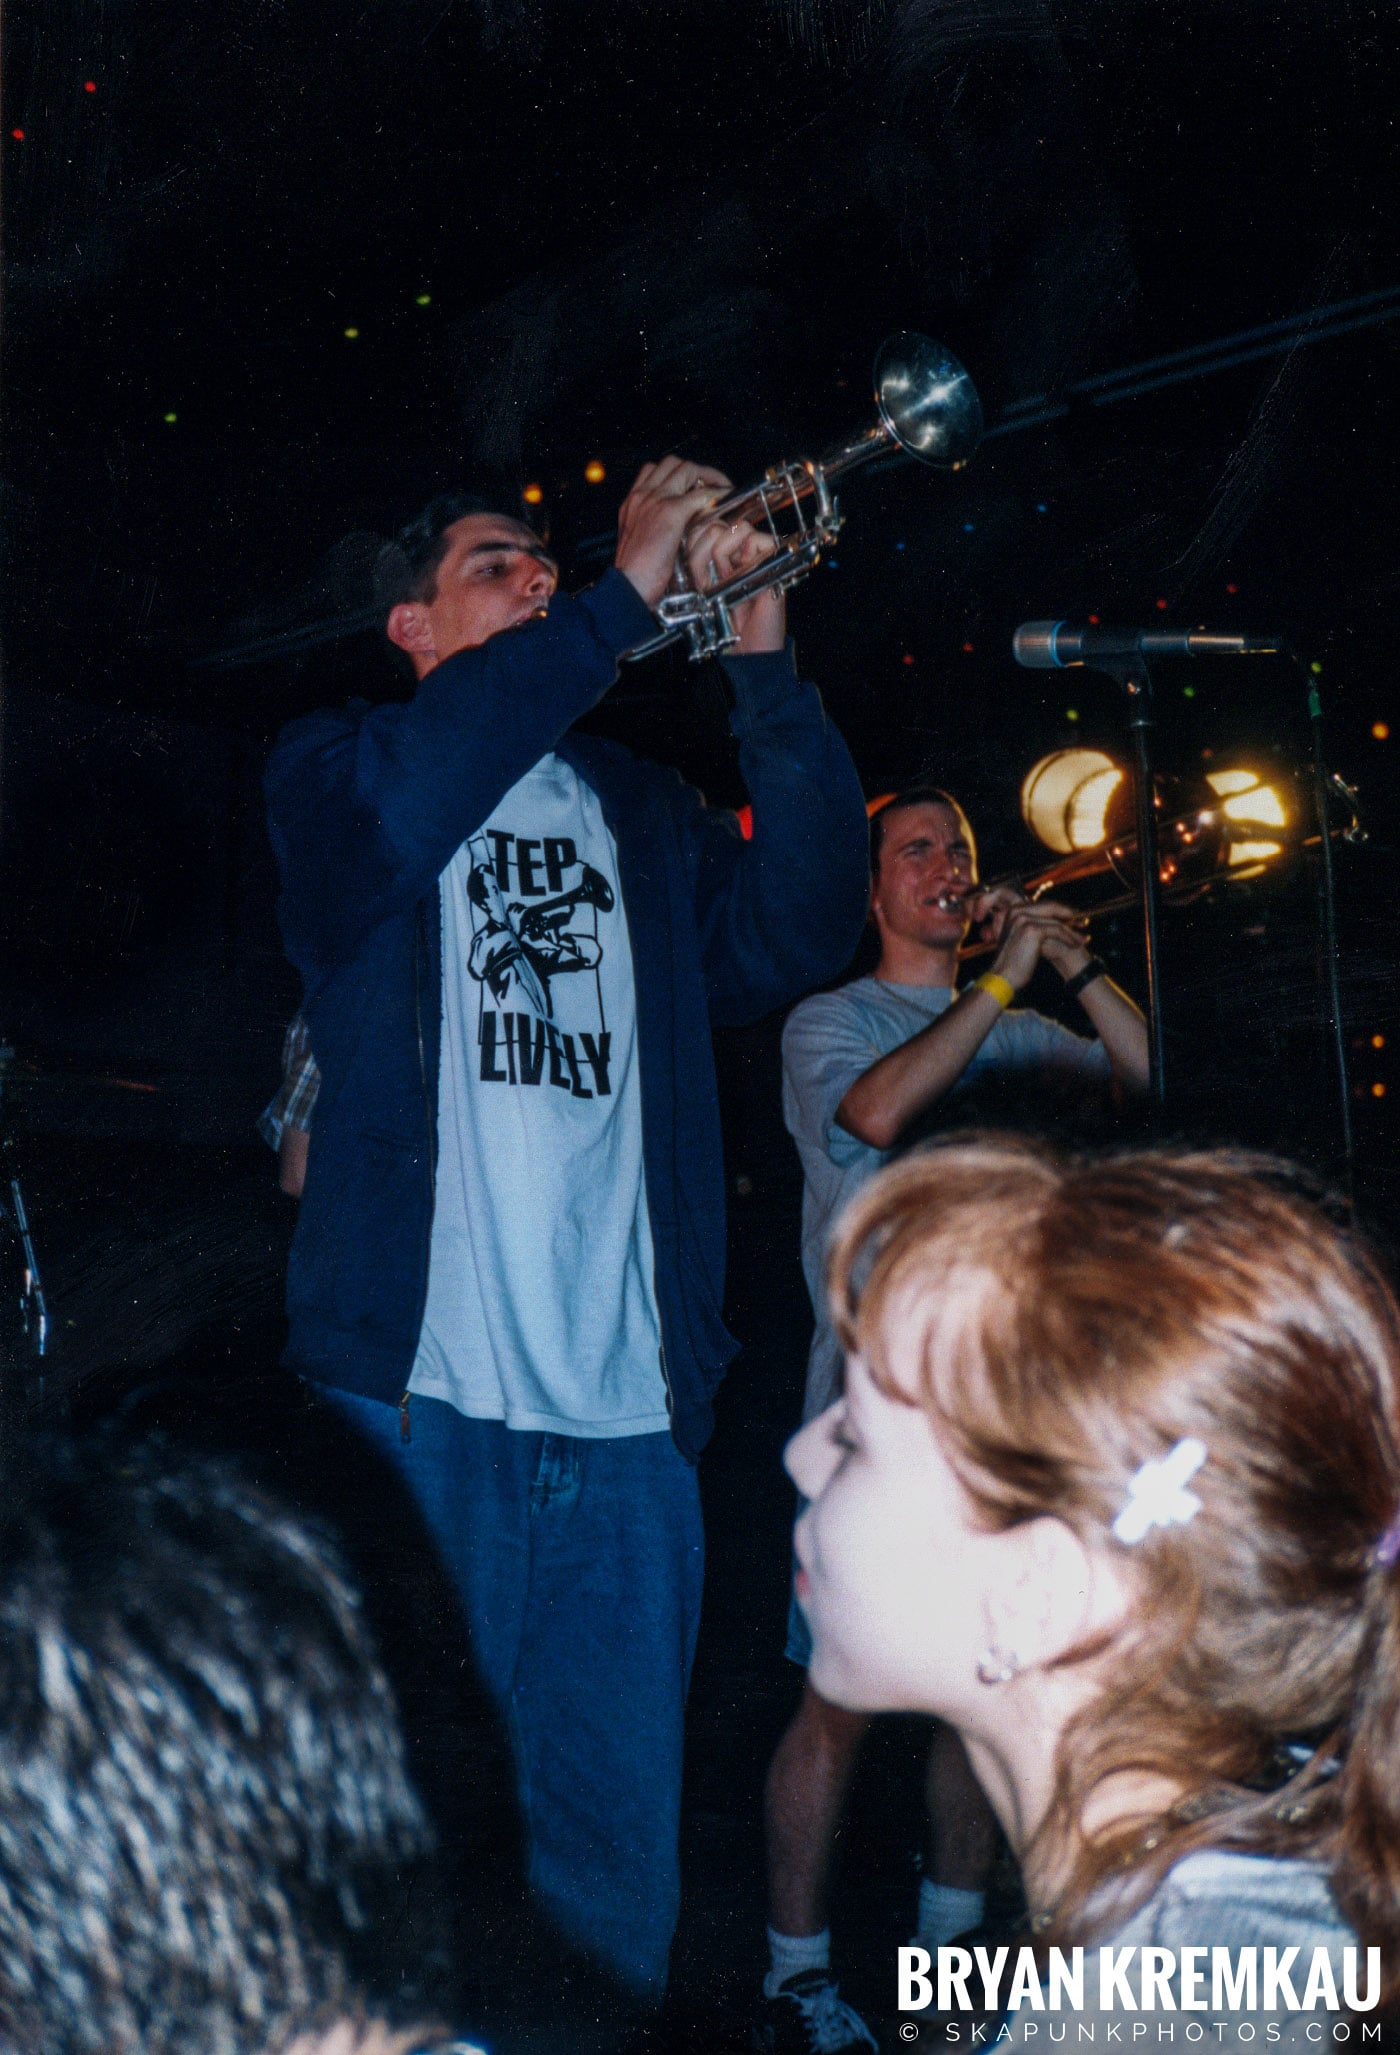 Edna's Goldfish @ Skater's World, Wayne, NJ - 5.23.98 (7)